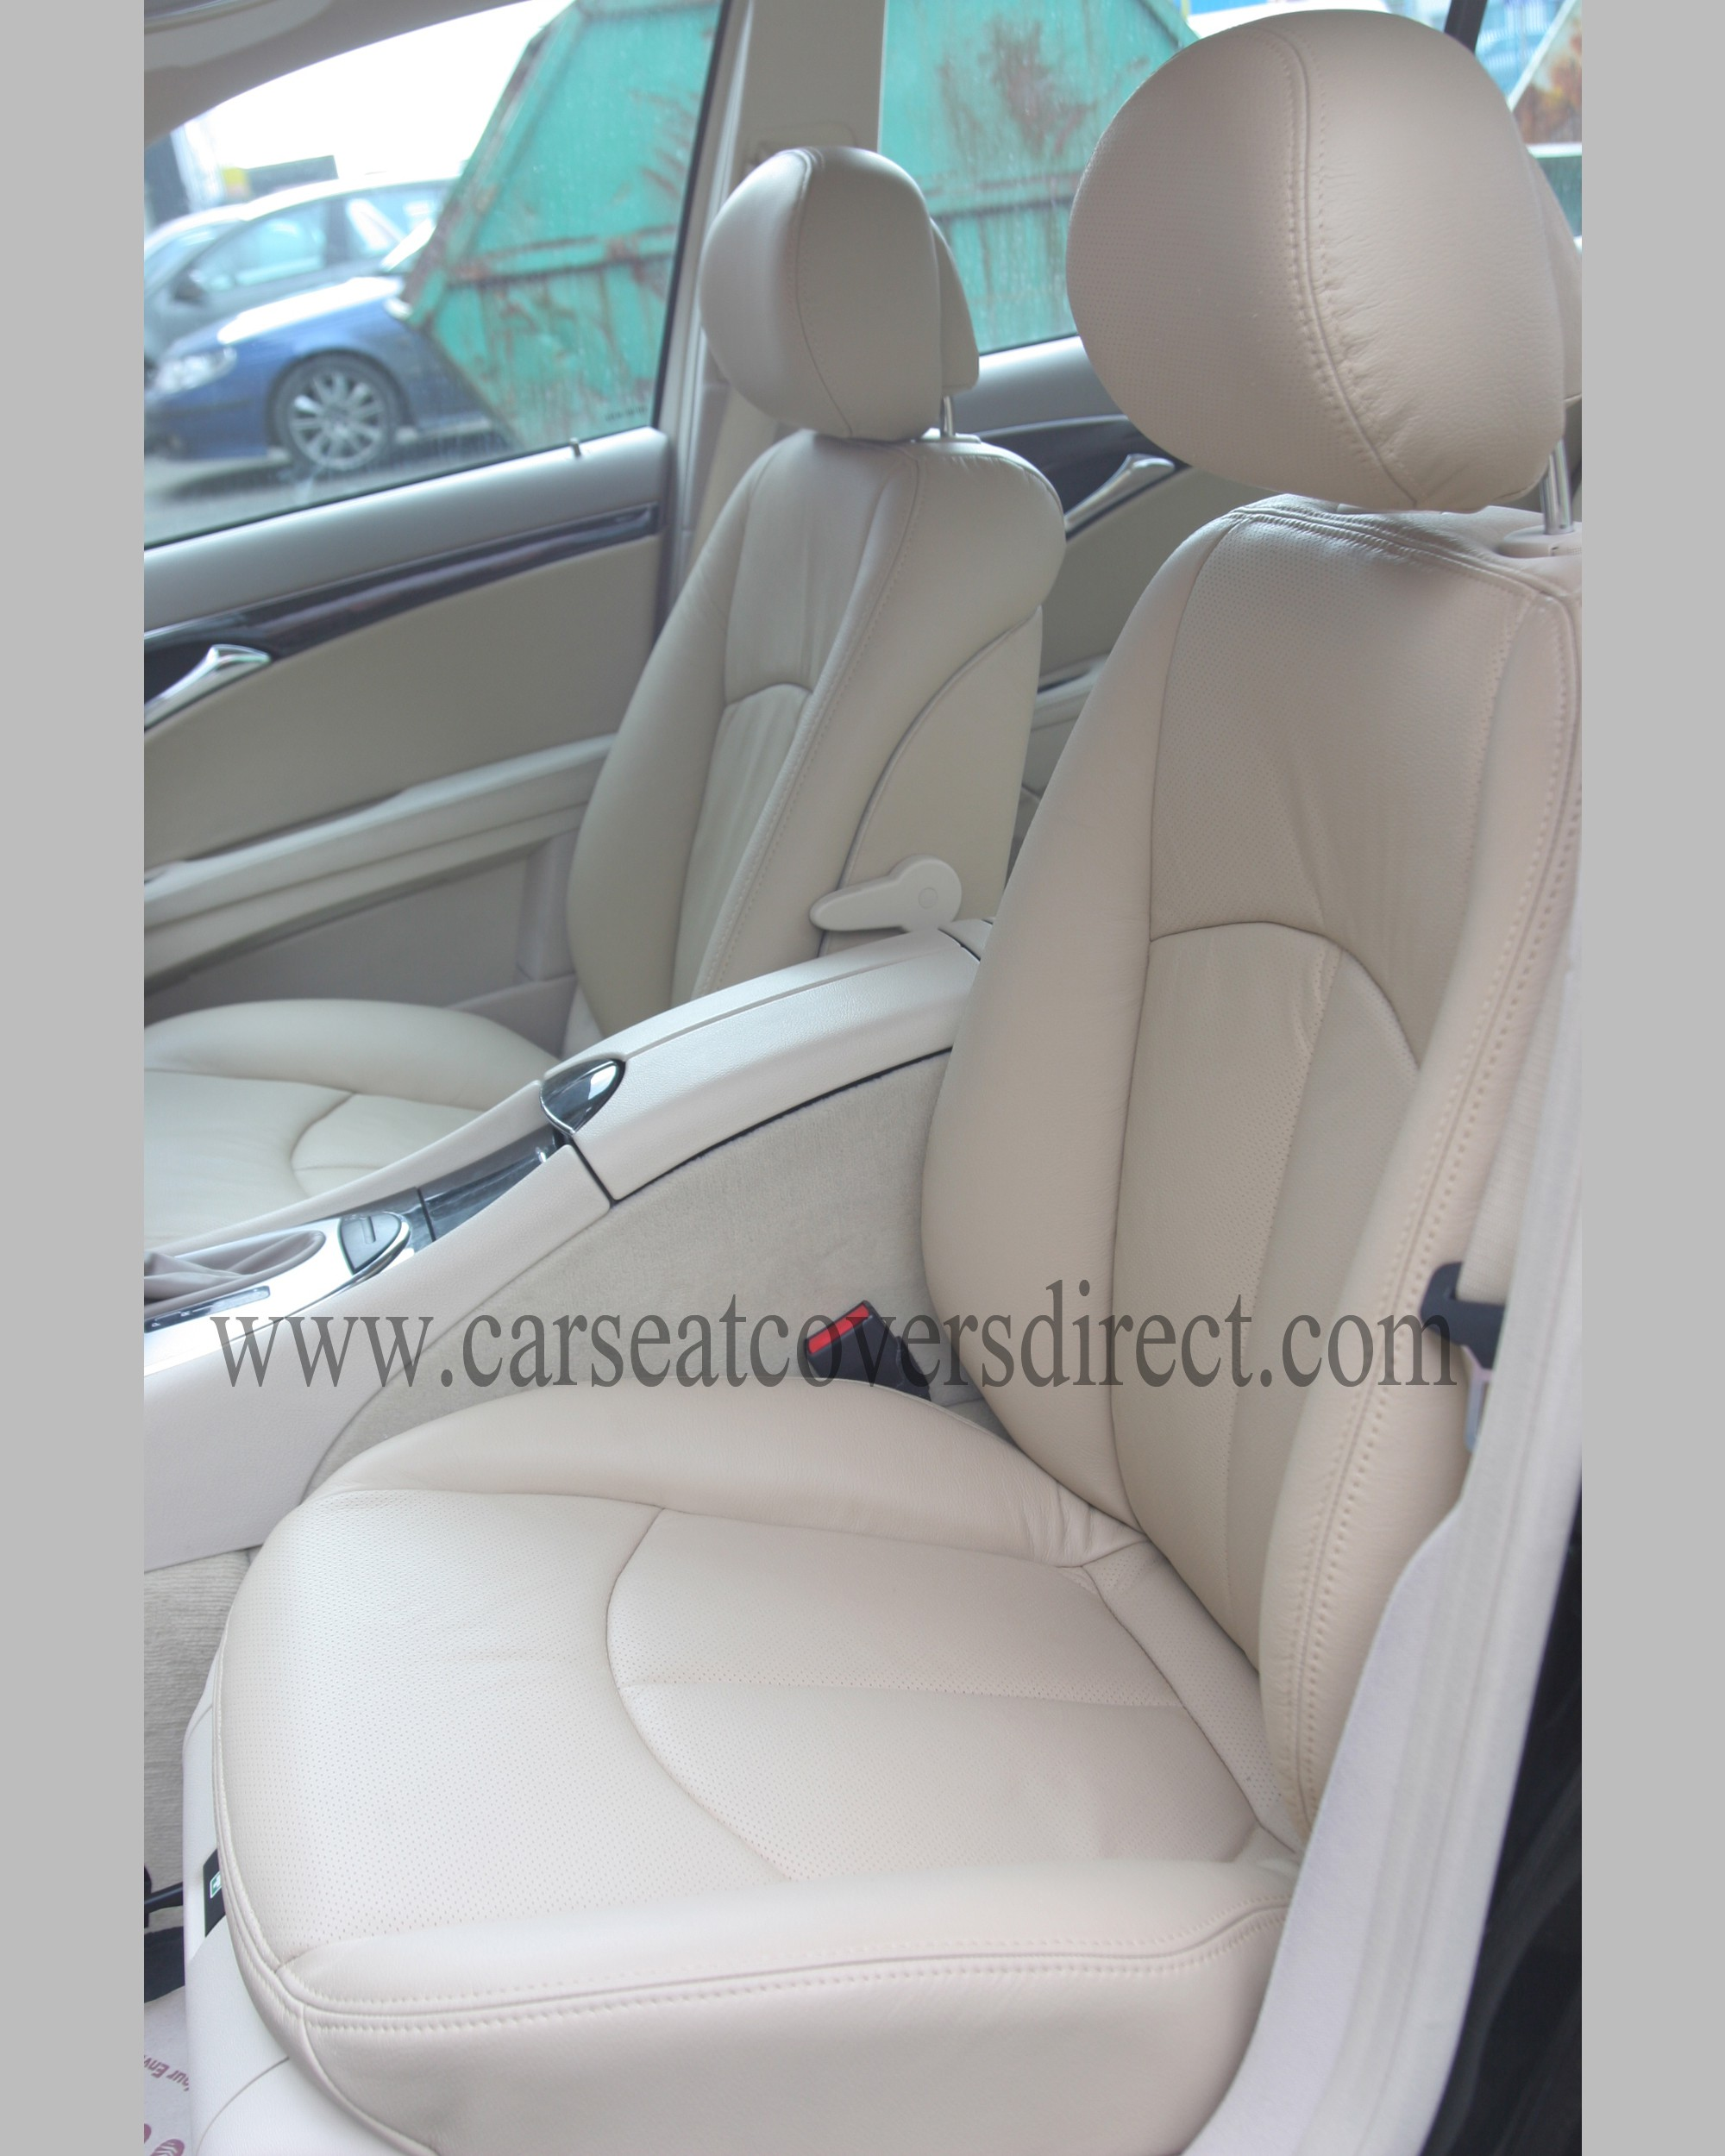 Mercedes e class w211 leather retrim car seat covers for Mercedes benz ml350 seat covers